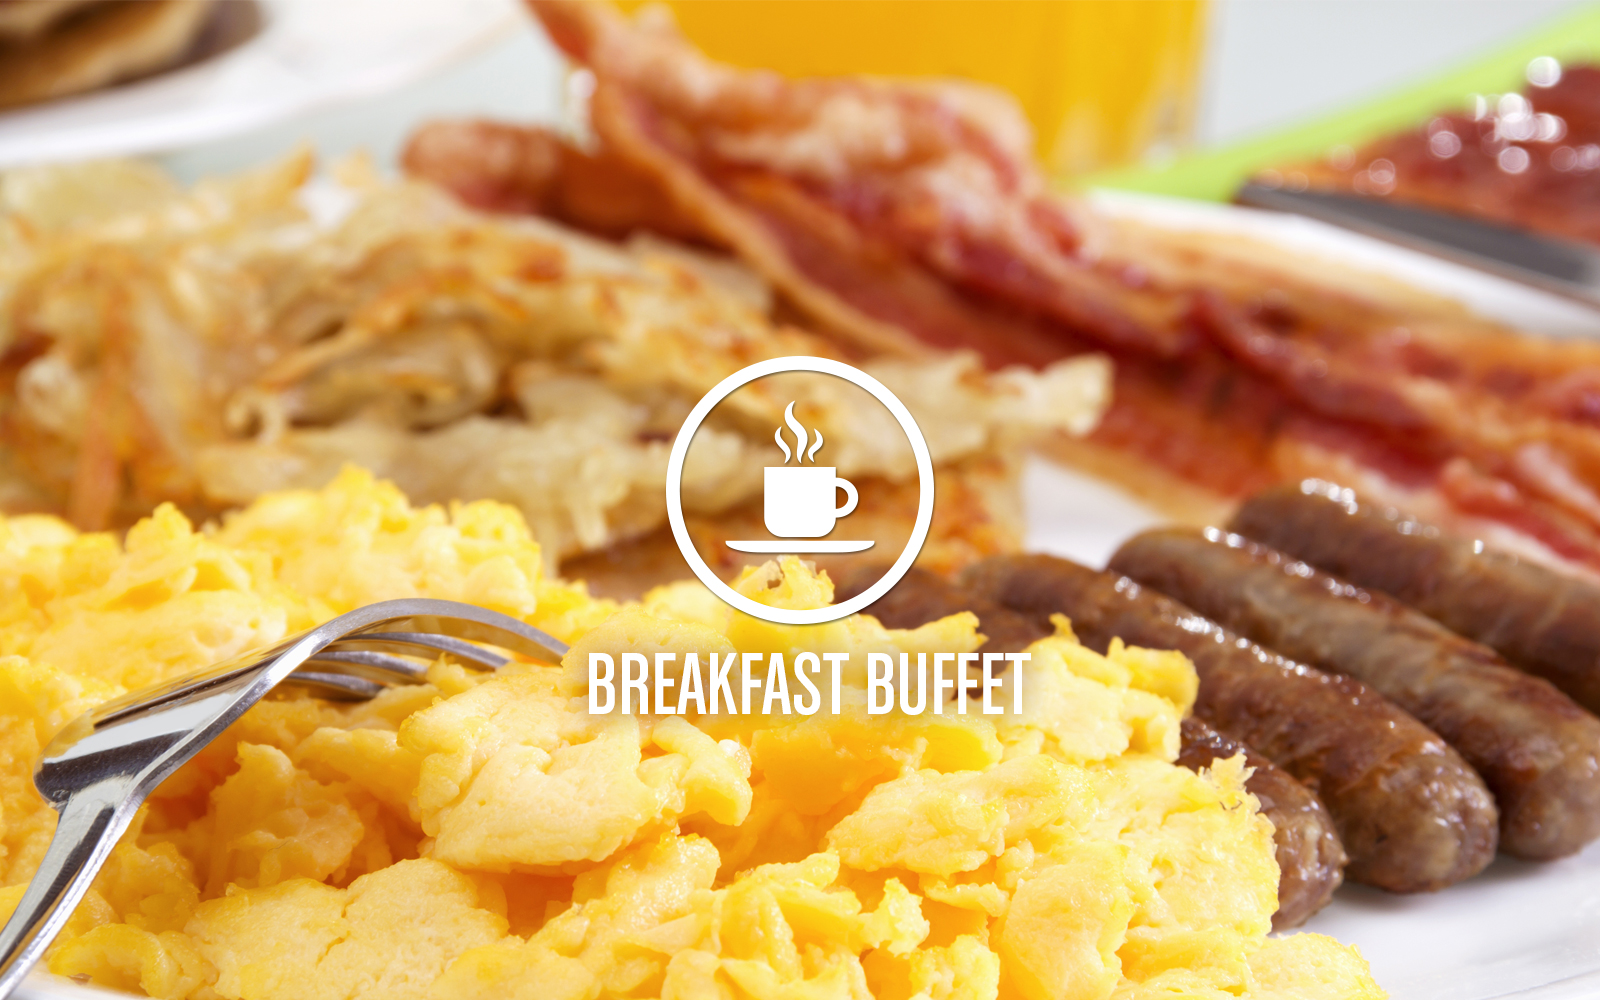 daily breakfast buffet cocopah resort rh cocopahresort com